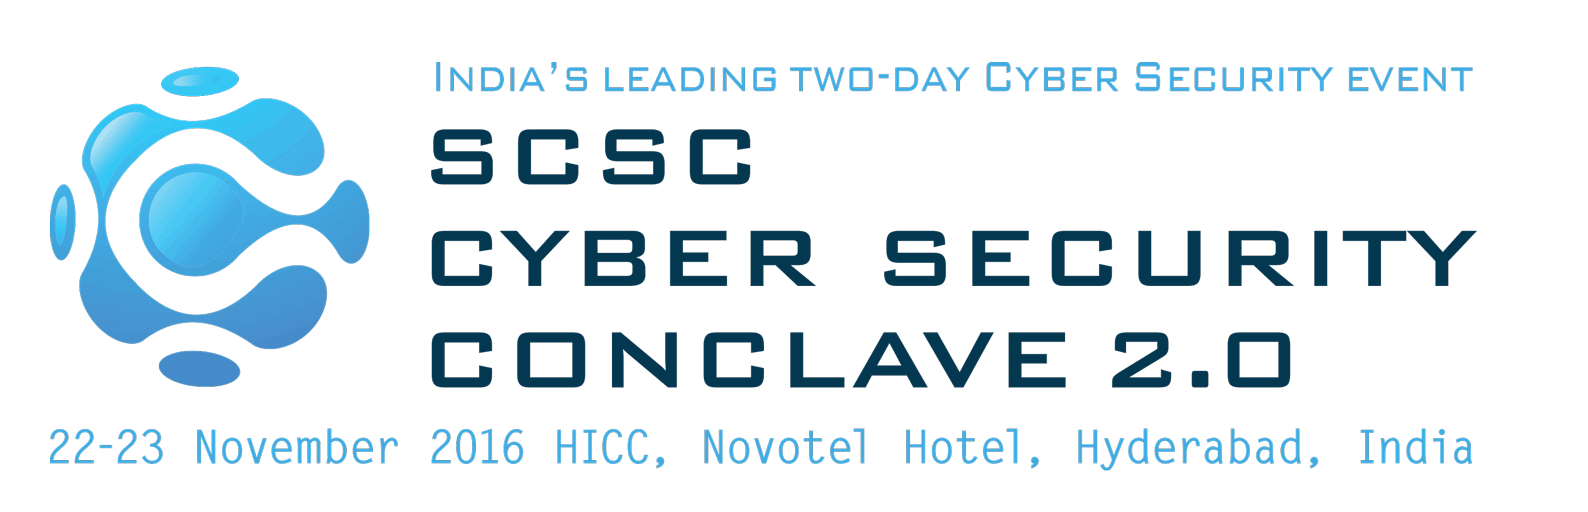 scsc_cyber_security_logo